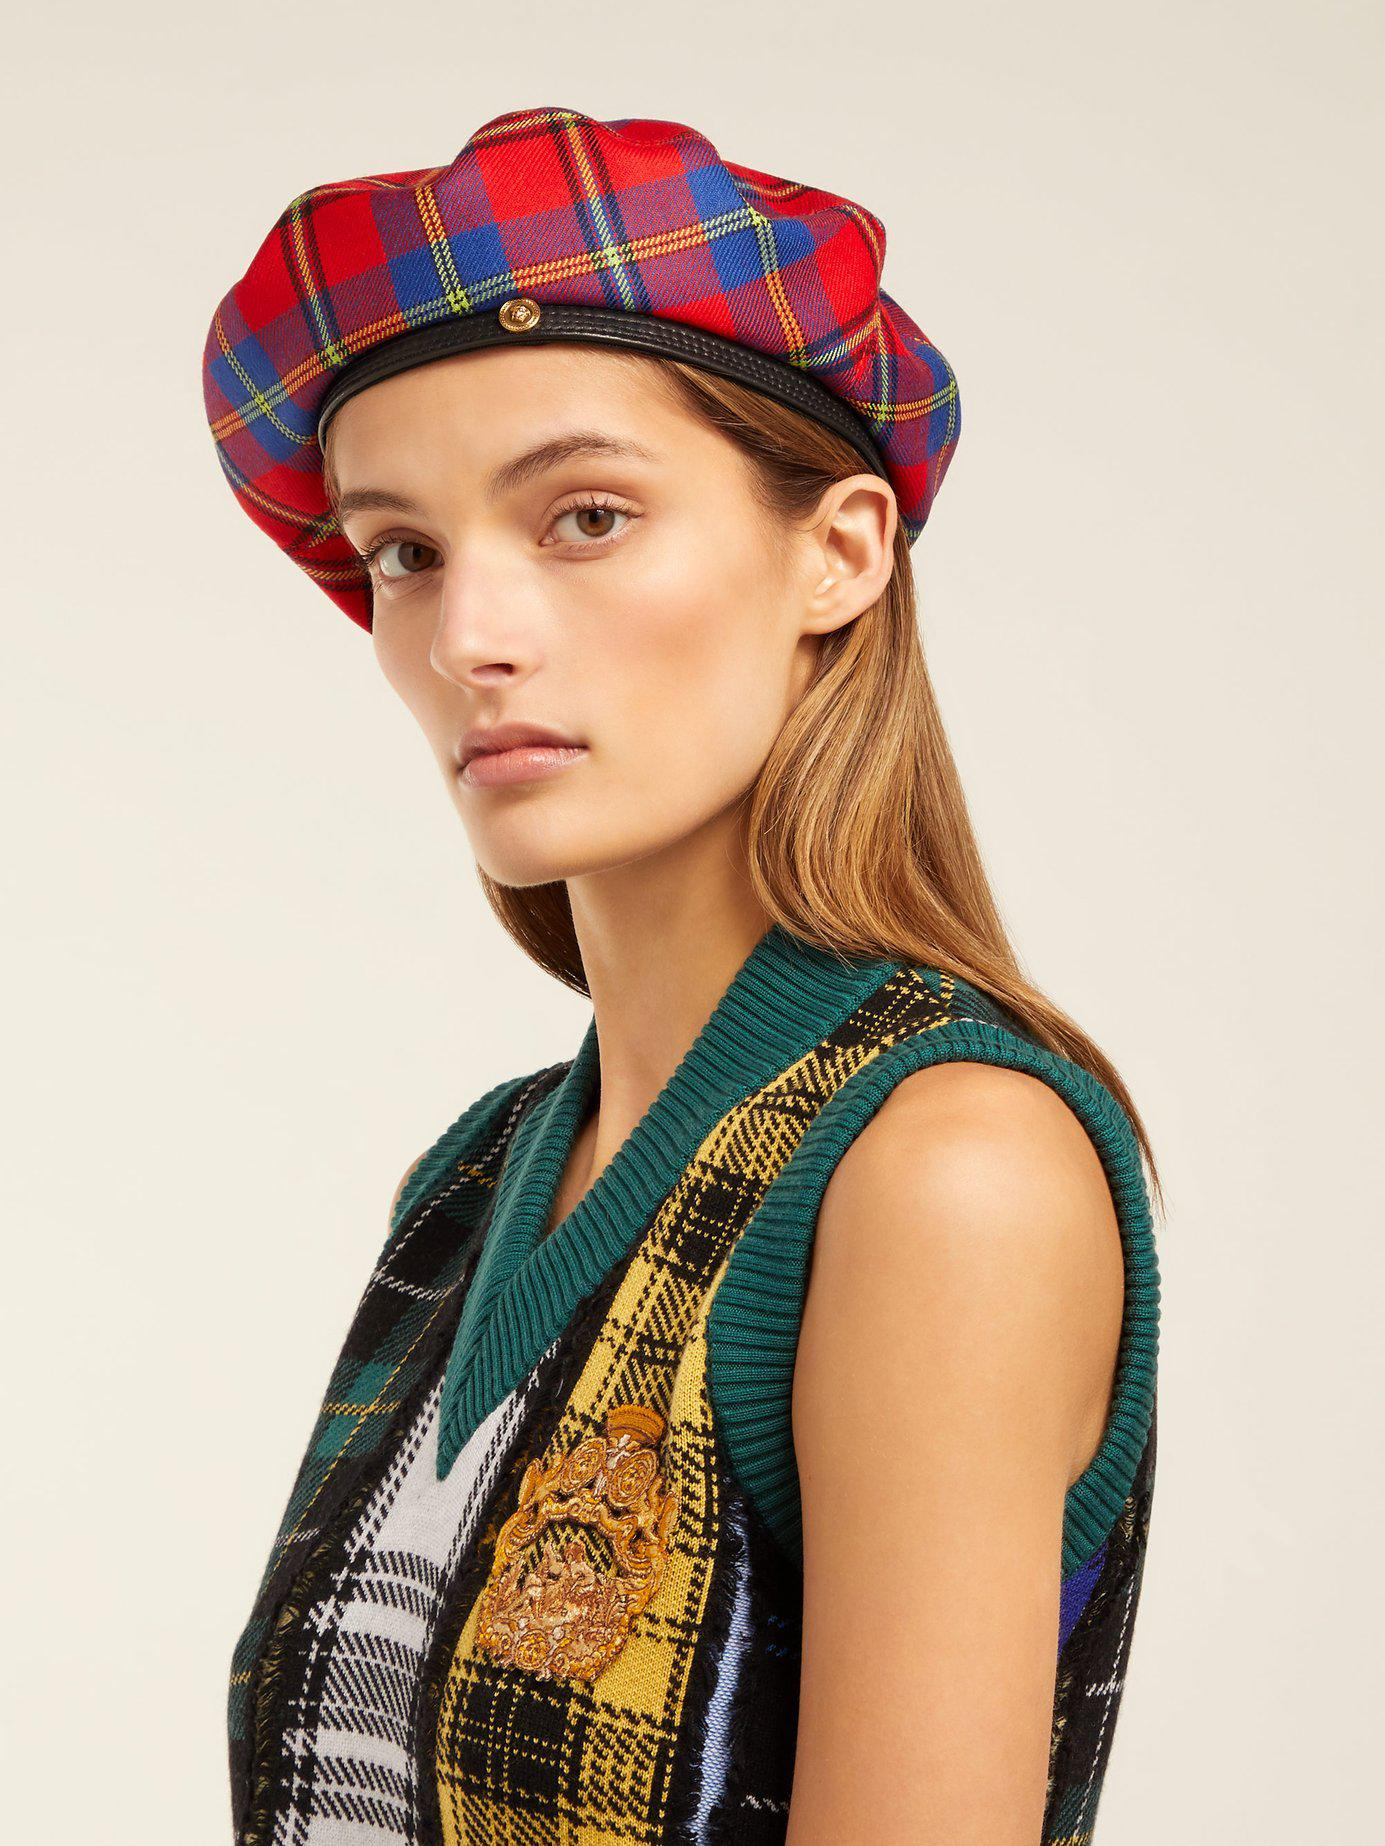 1c540c6e87dc1 Versace Red Plaid Medusa Beret in Red - Save 23.684210526315795% - Lyst